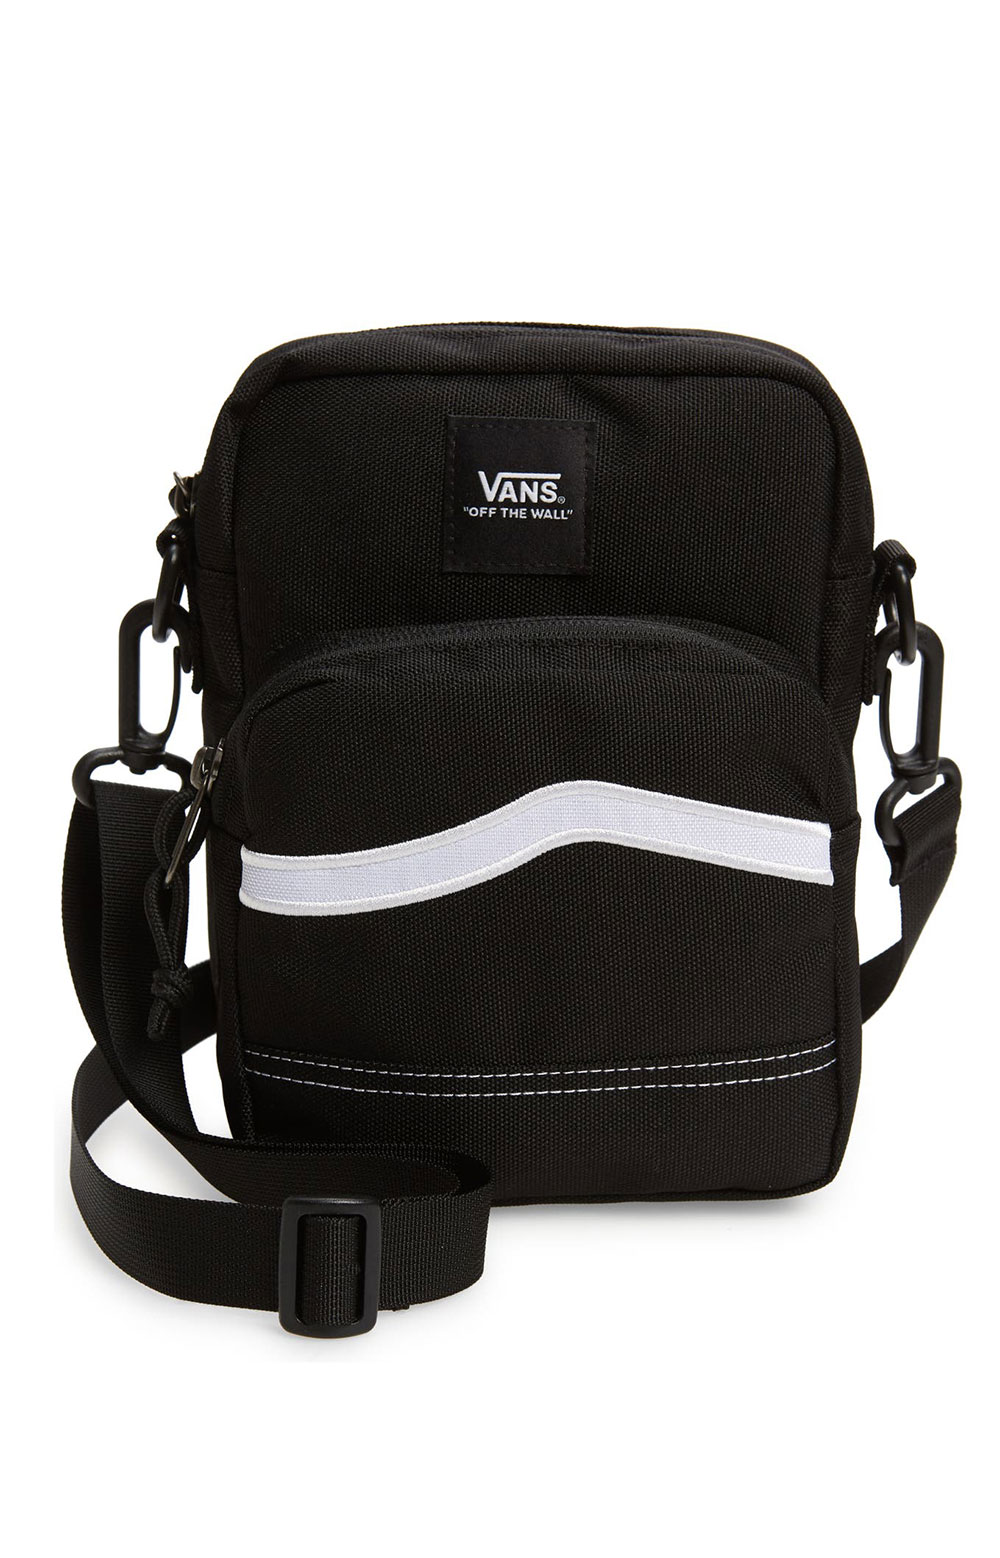 Construct Shoulder Bag- Black